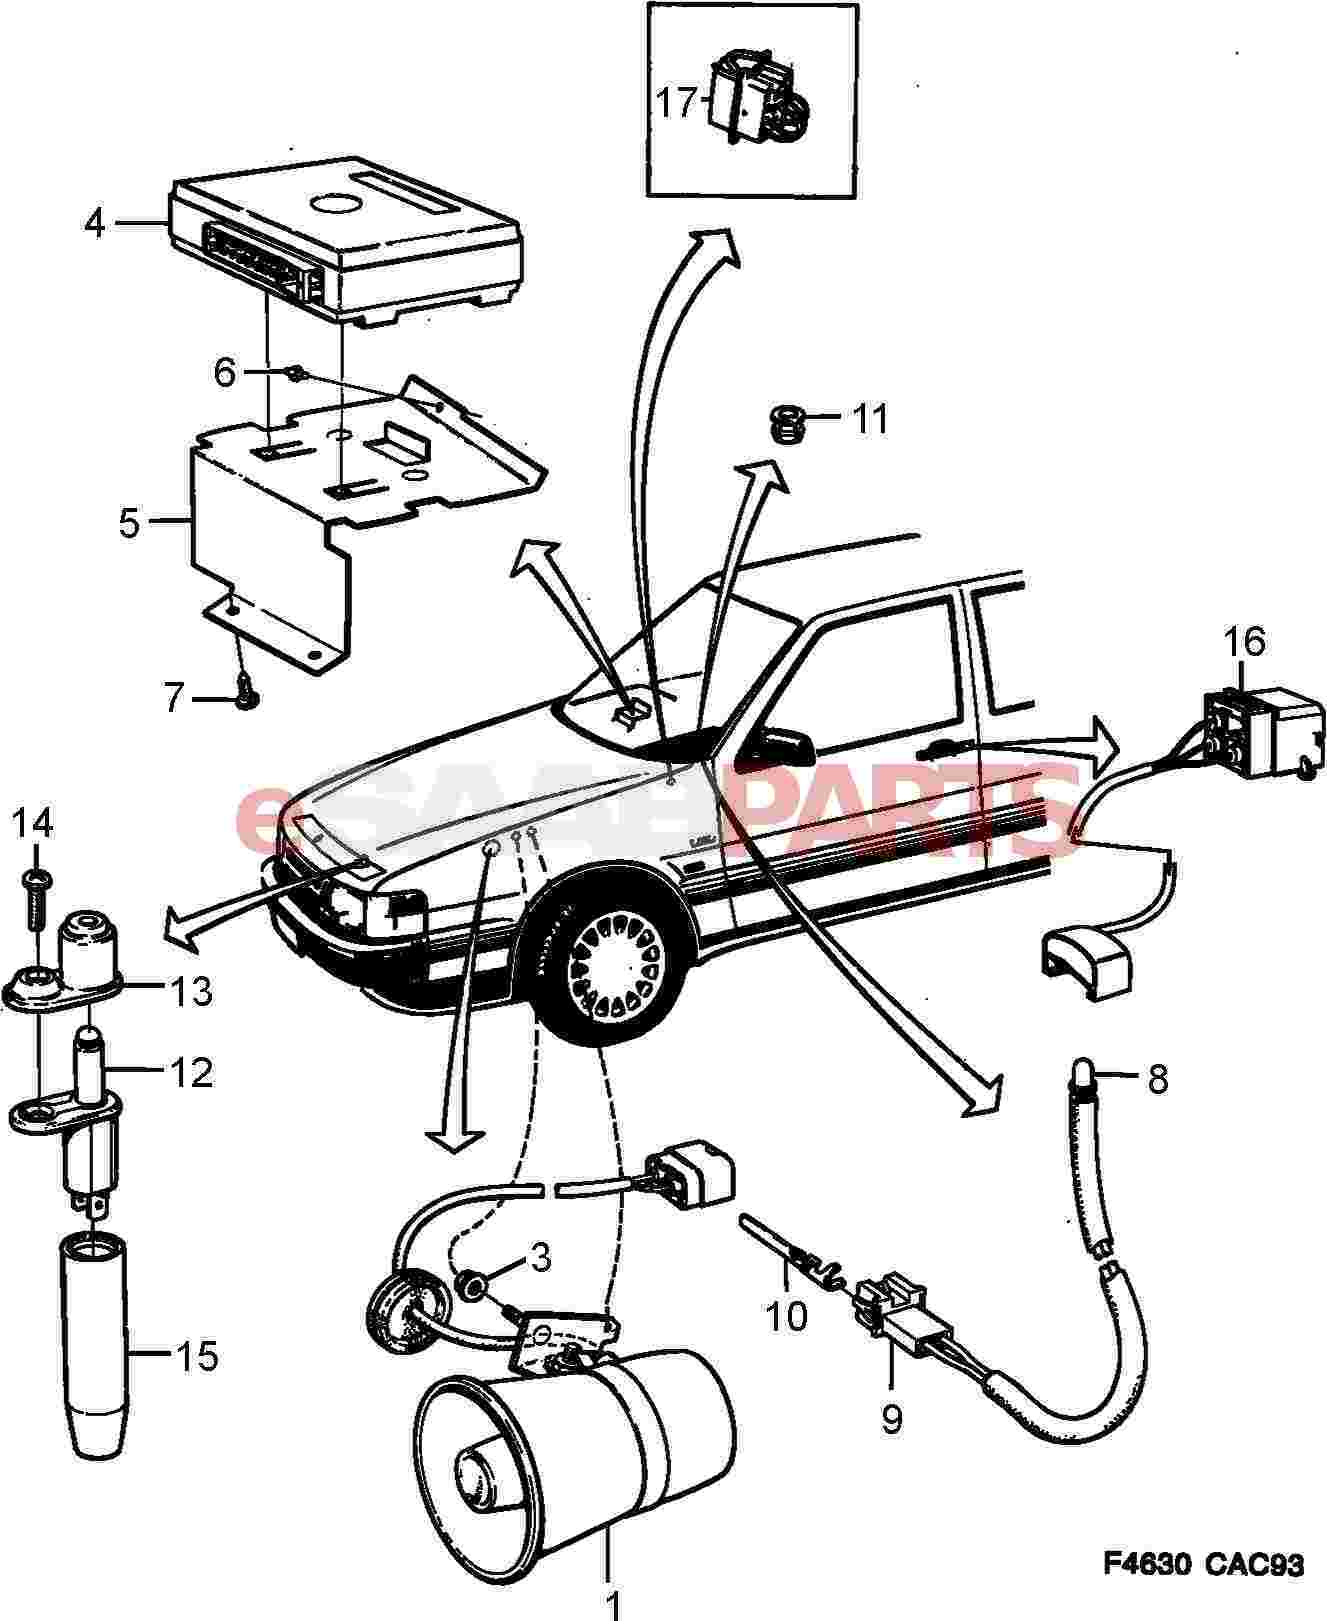 eSaabParts.com - Saab 9000 > Electrical Parts > Alarm & Related > Anti  theft system